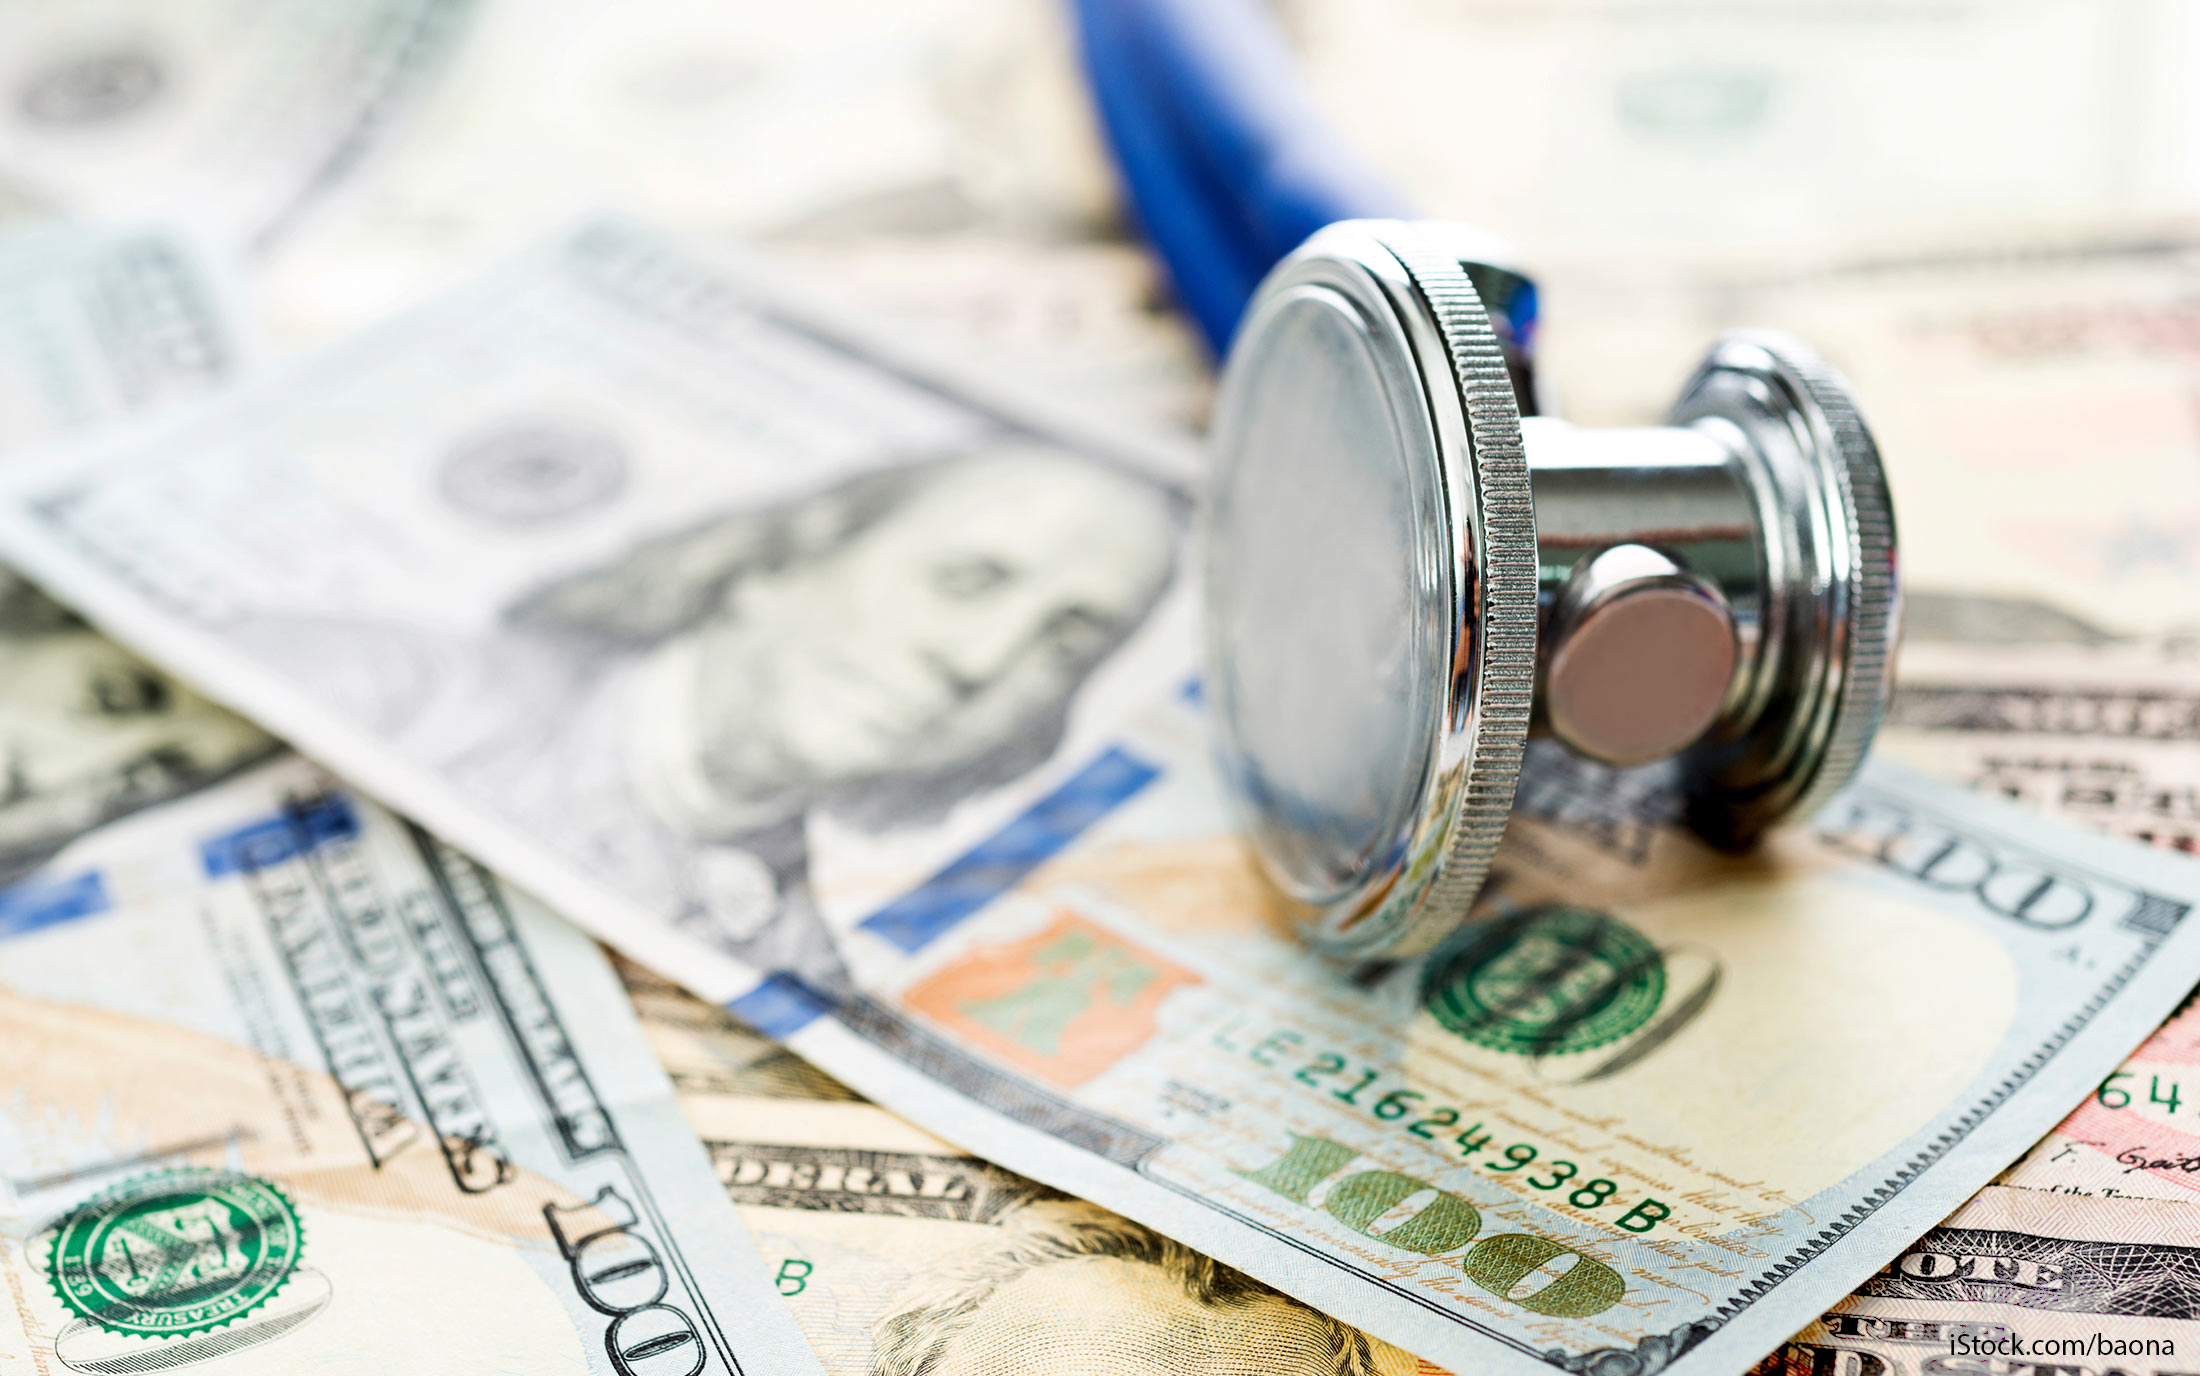 6 Telehealth Stocks to Invest In Right Now